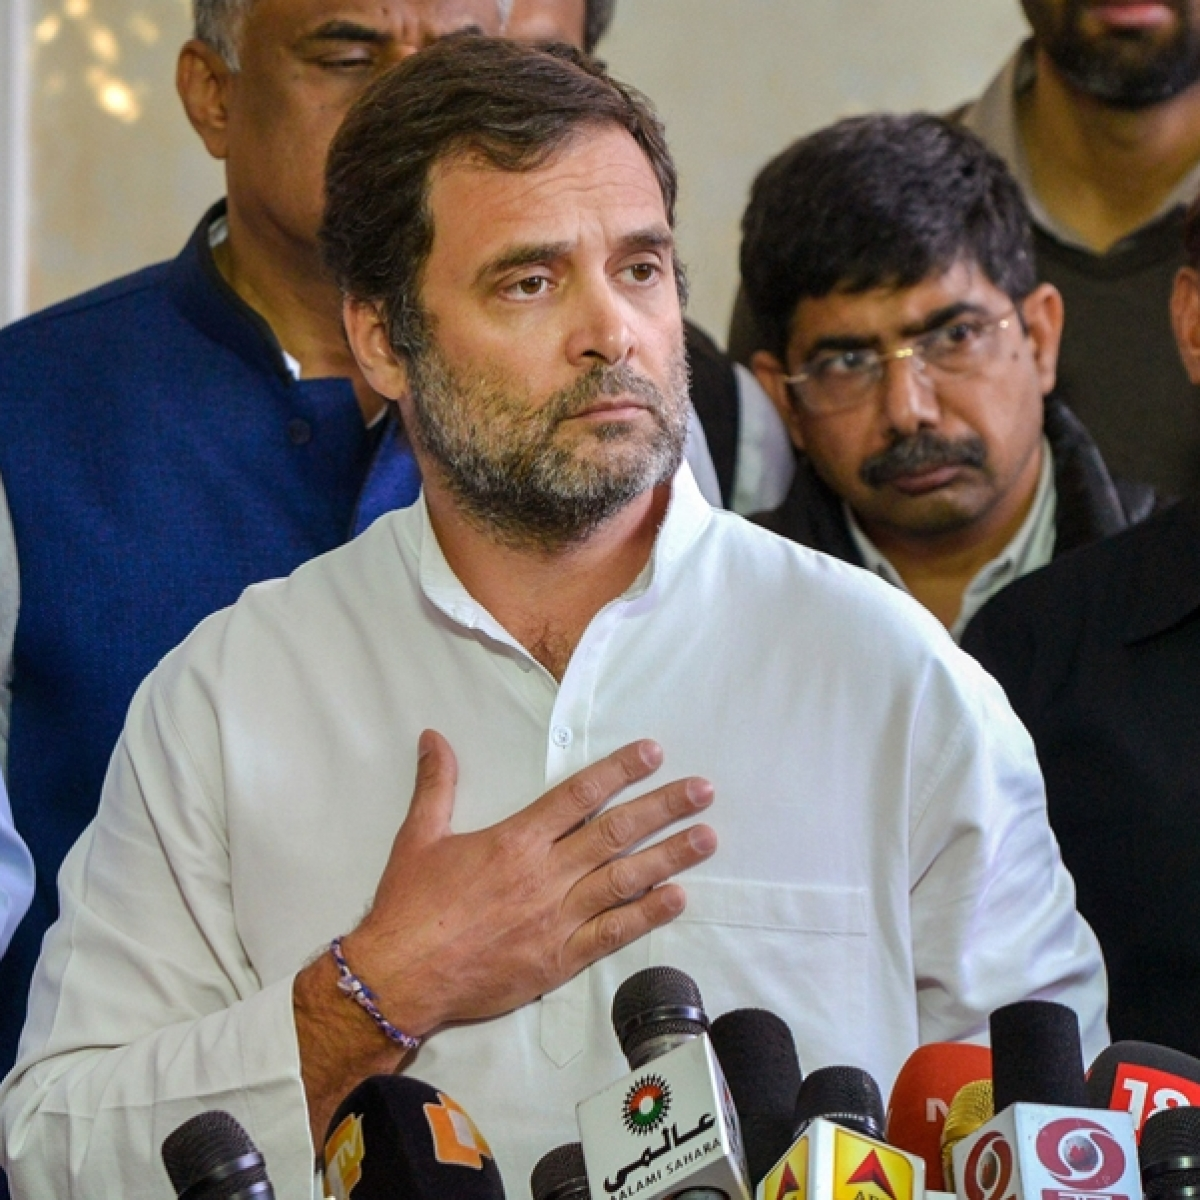 Latest coronavirus update: India should prepare not just for fighting virus but also for economic devastation, says Rahul Gandhi